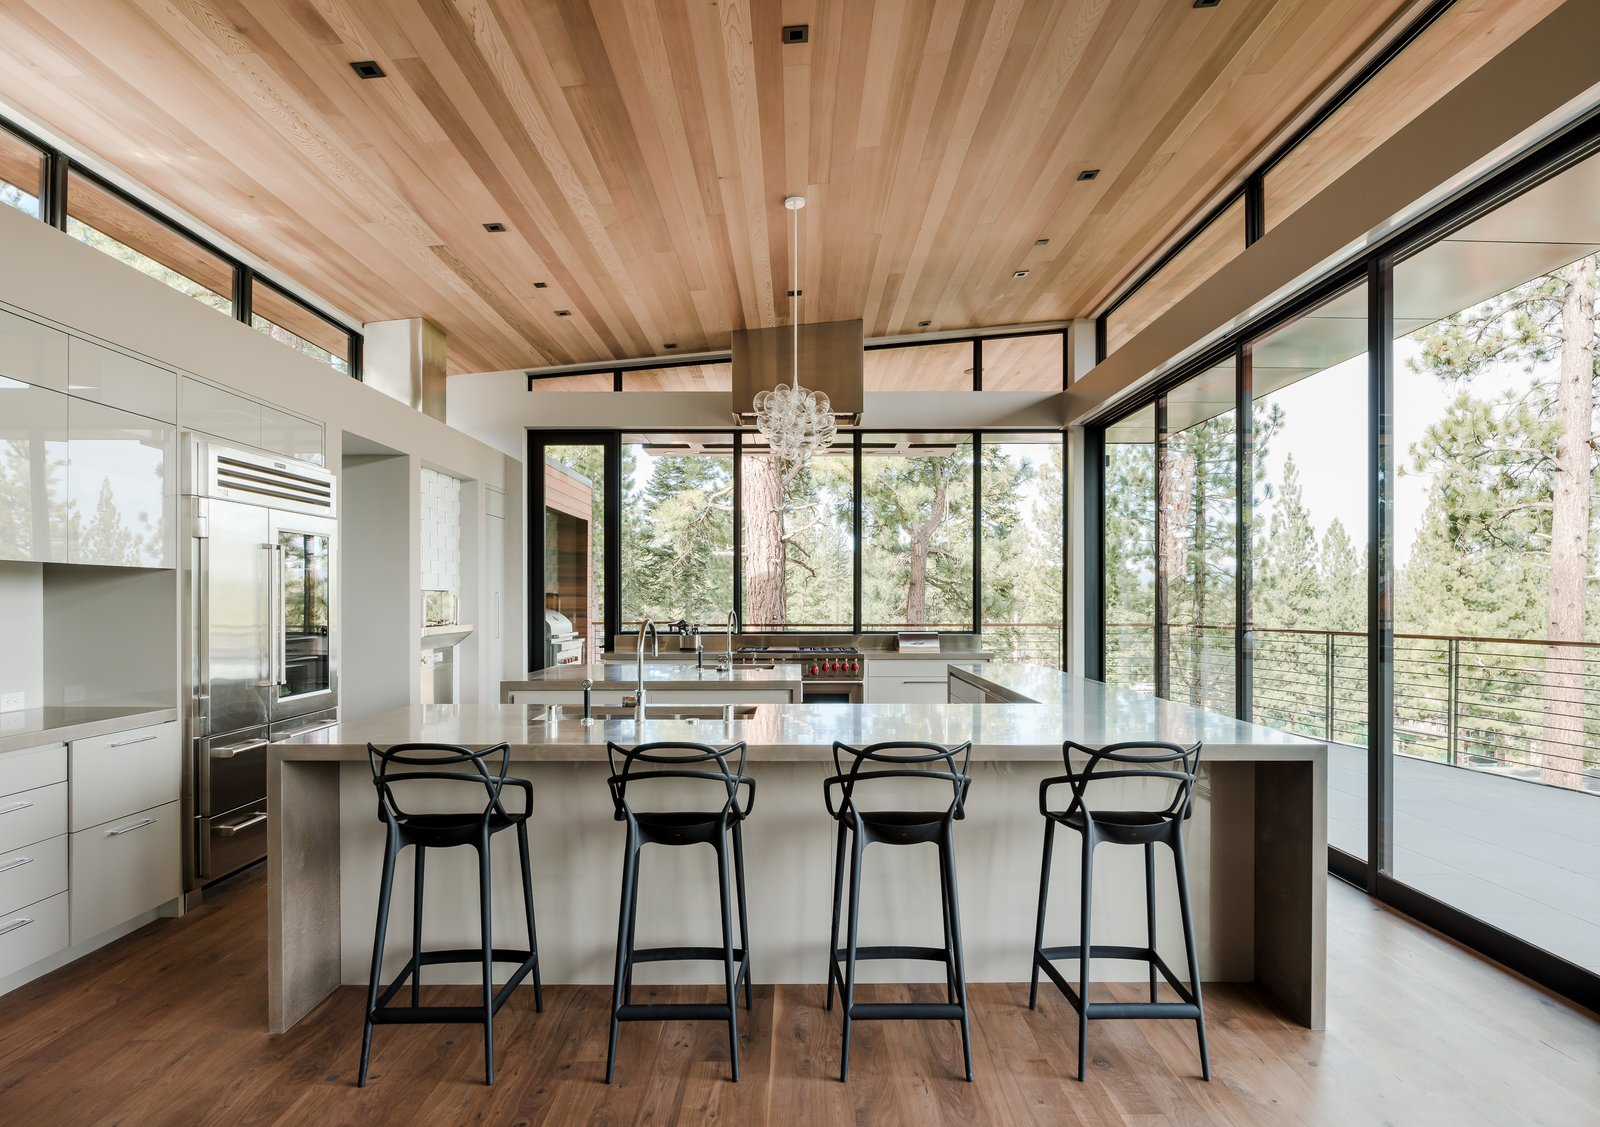 Tagged: Kitchen, Engineered Quartz Counter, White Cabinet, Medium Hardwood Floor, Ceiling Lighting, Recessed Lighting, Refrigerator, Accent Lighting, Wall Oven, Range, and Undermount Sink.  Martis Camp Residence 2 by John Maniscalco Architecture